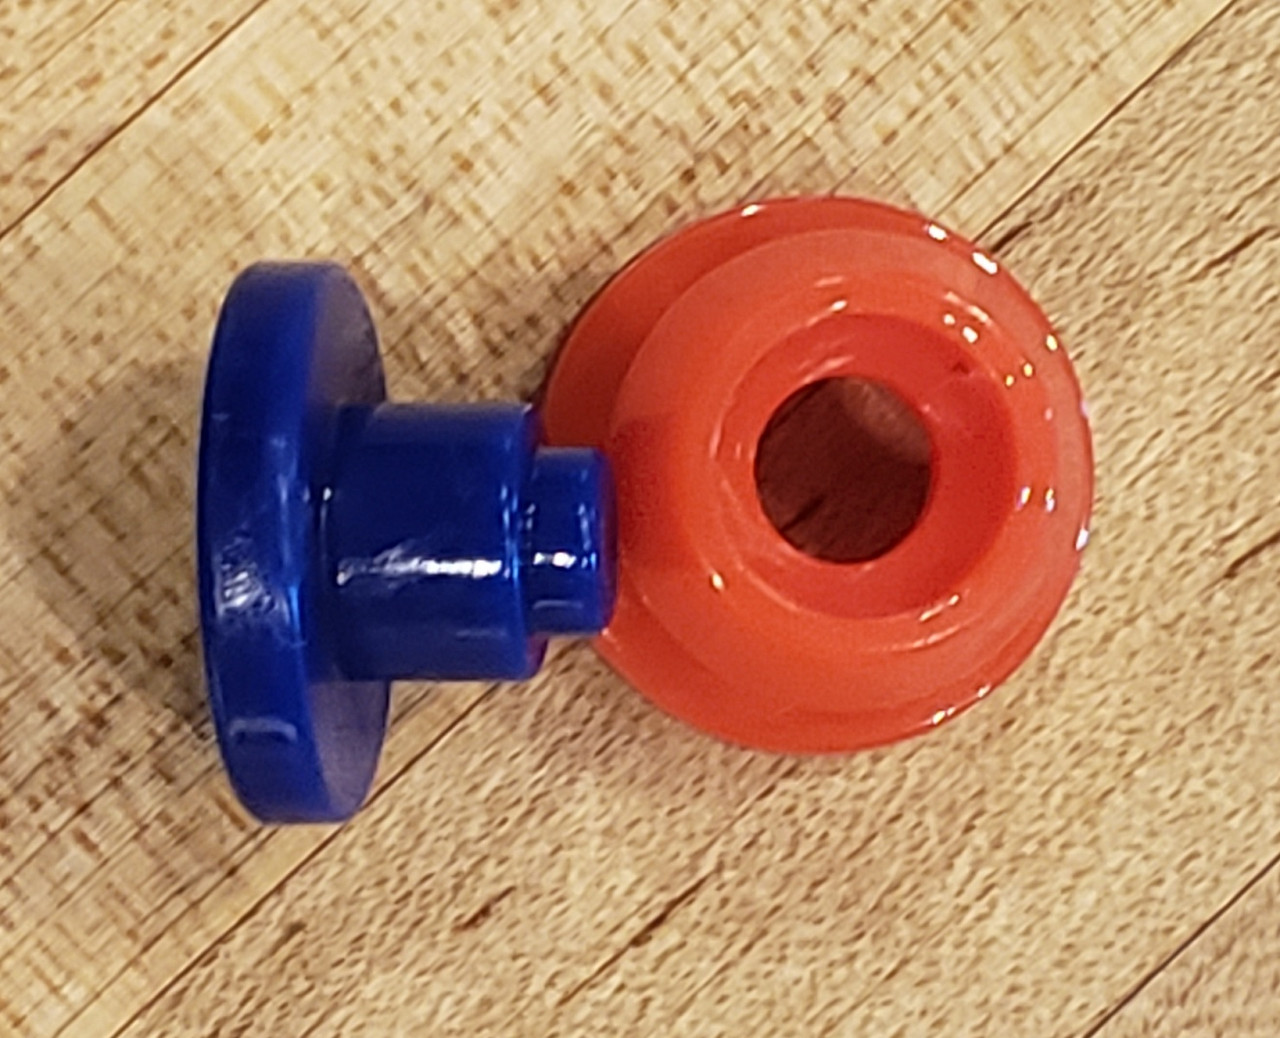 Ford F-500 FA1KIT™ Transmission Shift Lever / Linkage Replacement Bushing Kit includes one bushing and one installation tool.